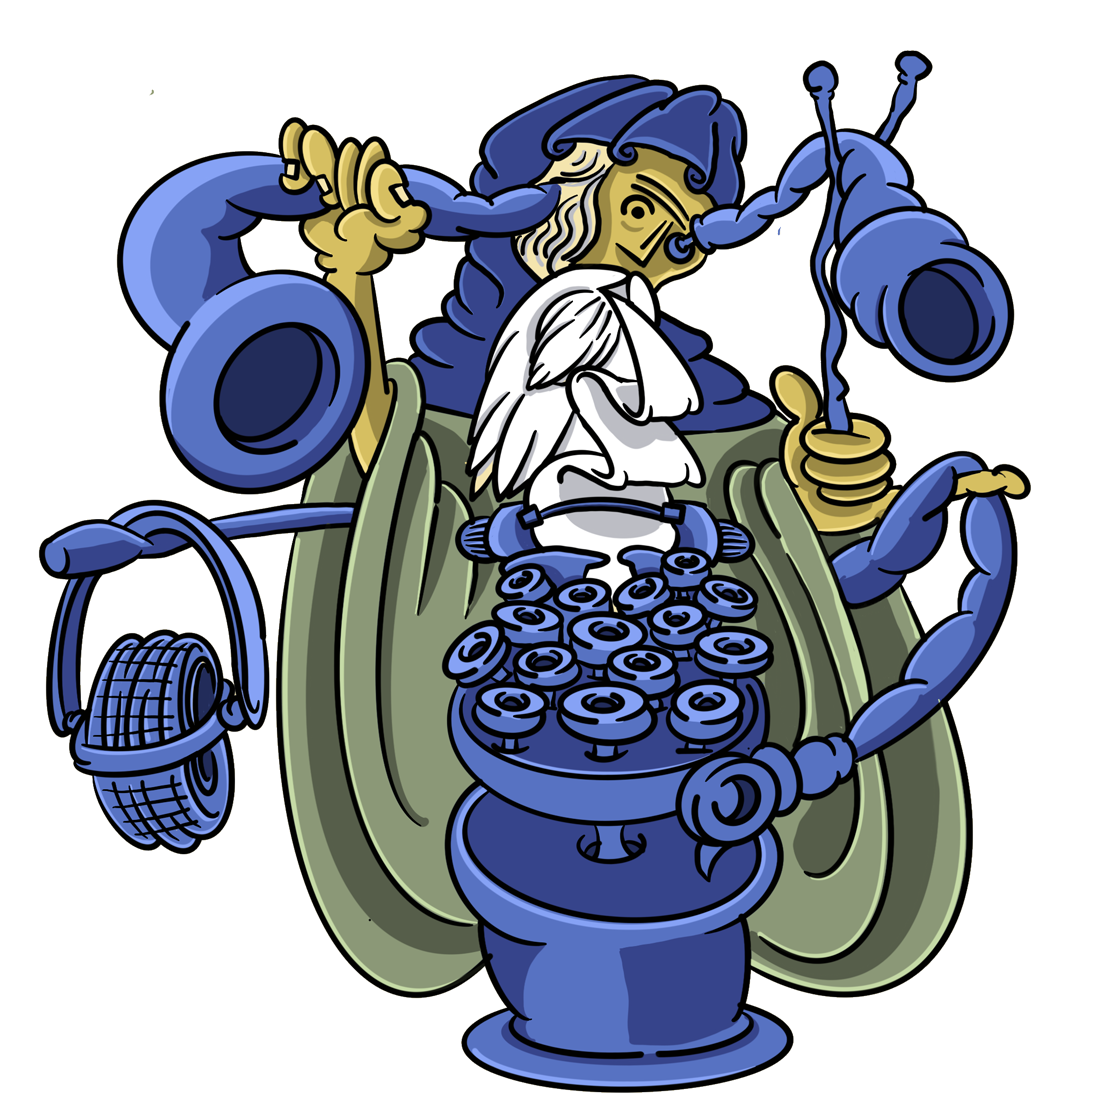 a saint with a telescope coming out of his eye